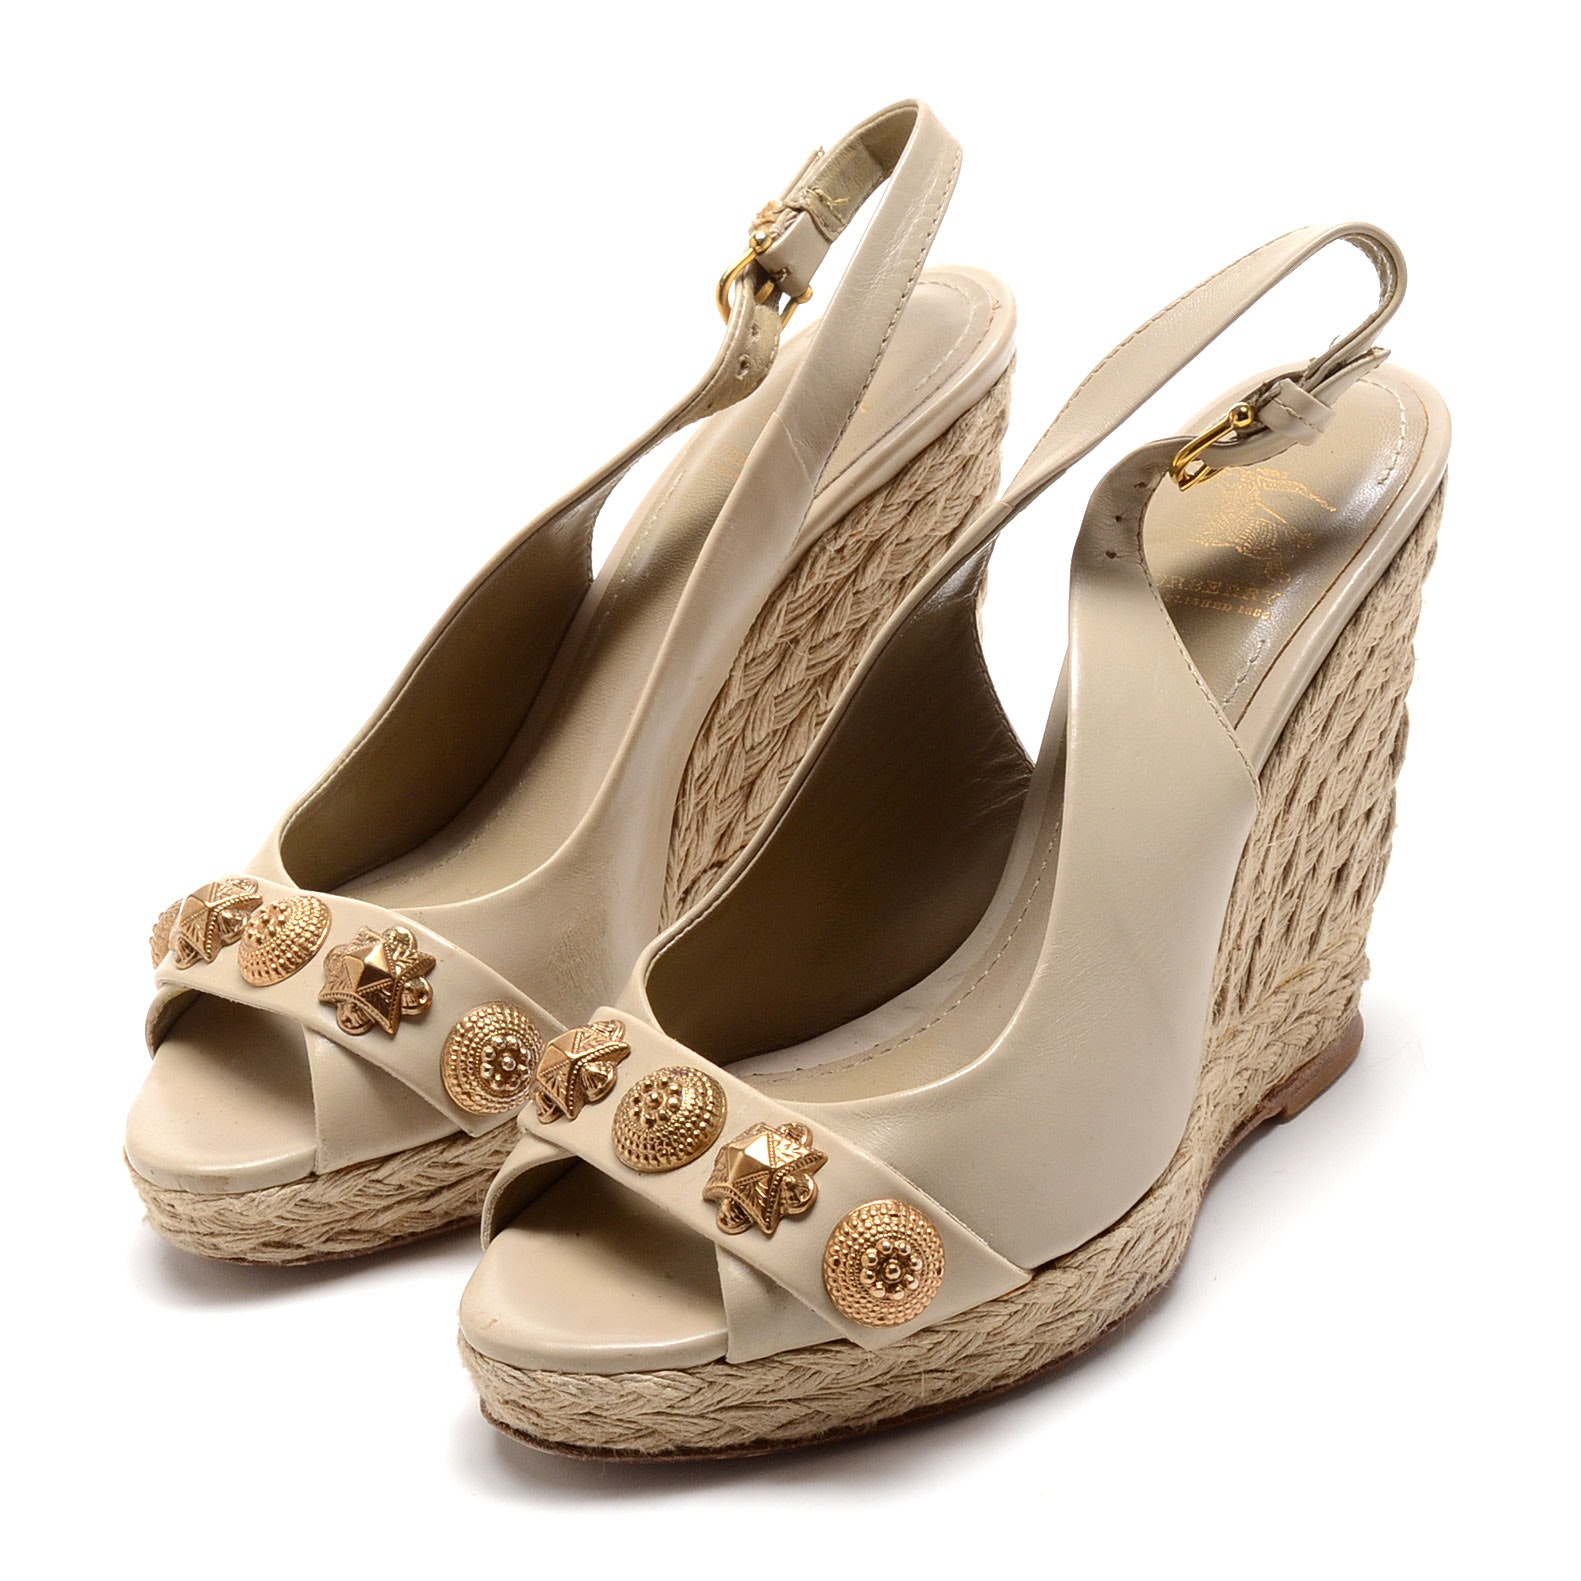 Burberry of London Taupe Leather Platform Peep Toe Espadrille Wedge Sling Back Dress Sandals